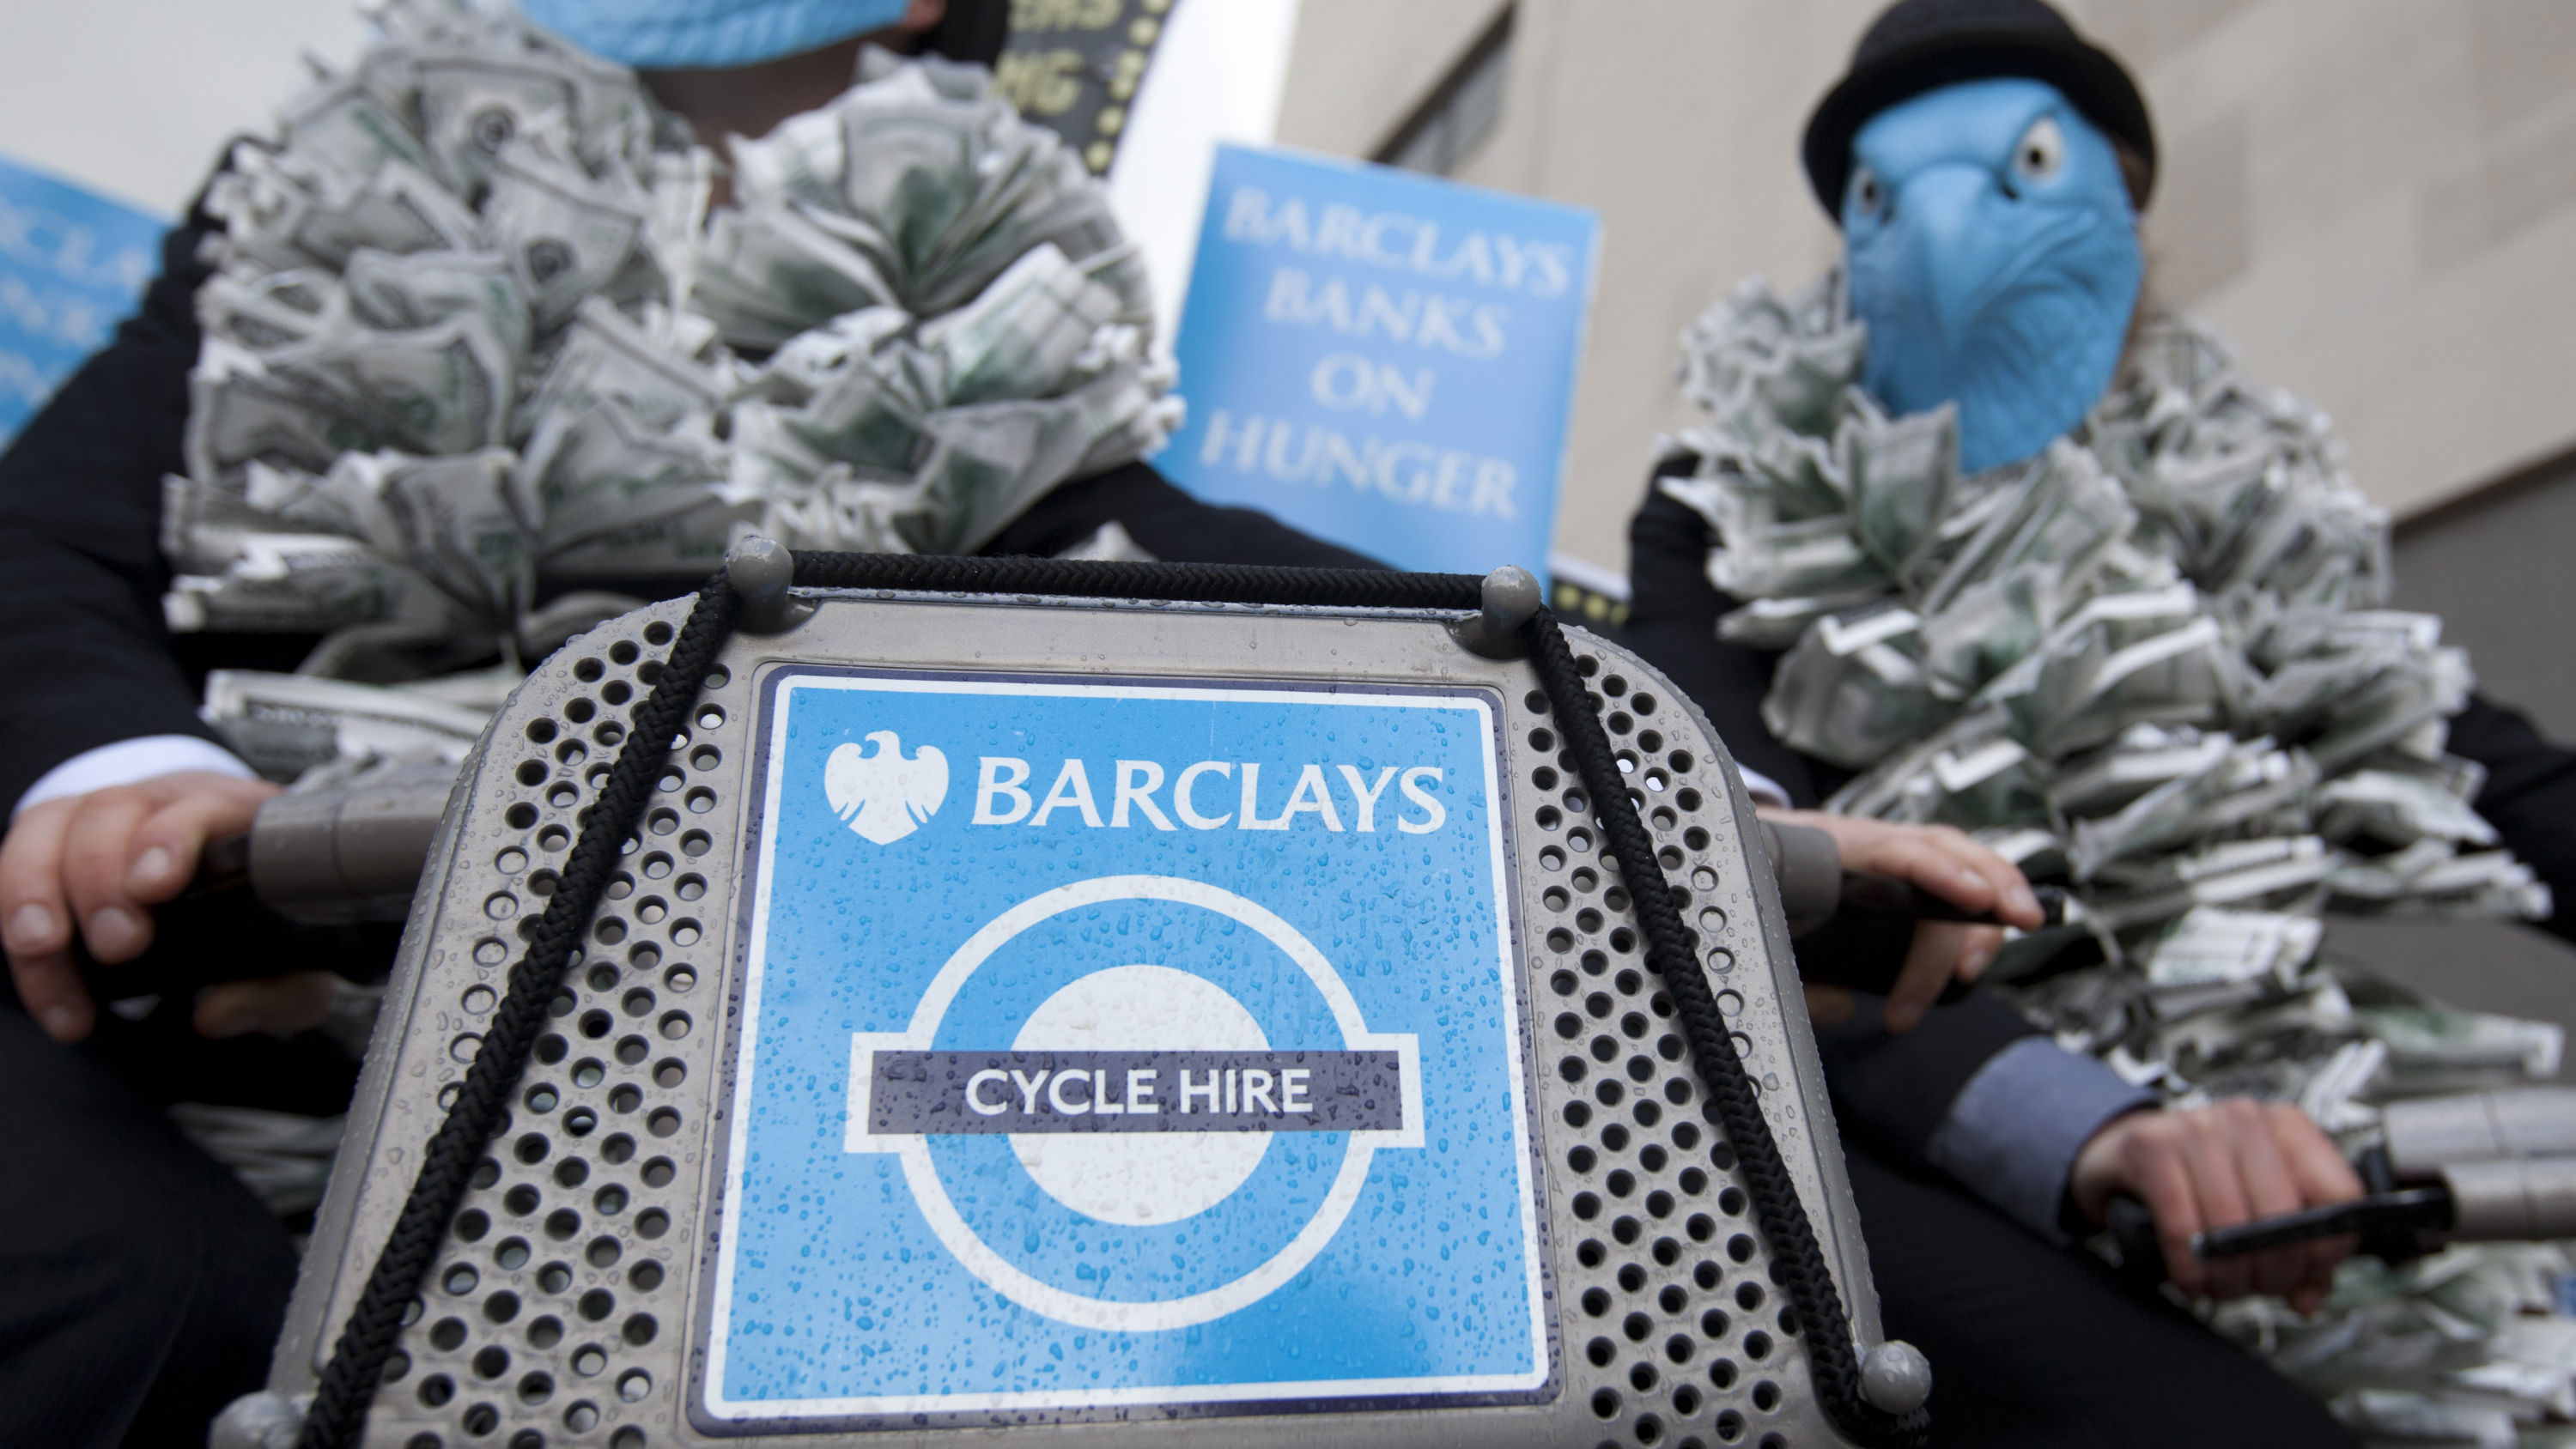 Demonstrators protesting about Barclays Bank and its world wide operations outside the Royal Festival Hall where the Barclays Bank Annual General Meeting for shareholders is being held in London, Friday, April 27, 2012. The protesters wear blue eagle masks which is the Barclay Bank company logo. Barclays PLC reported a 25 percent gain in first-quarter net profit on Thursday, beating market forecasts with strong performances in its retail and business banking, and wealth and investment management divisions. For the three months ending March 31, Barclays reported an adjusted profit after tax of 1.87 billion pounds ($3 billion) after taxes, compared to 1.5 billion pounds a year earlier. Income rose by 5 percent to 8.14 billion pounds.